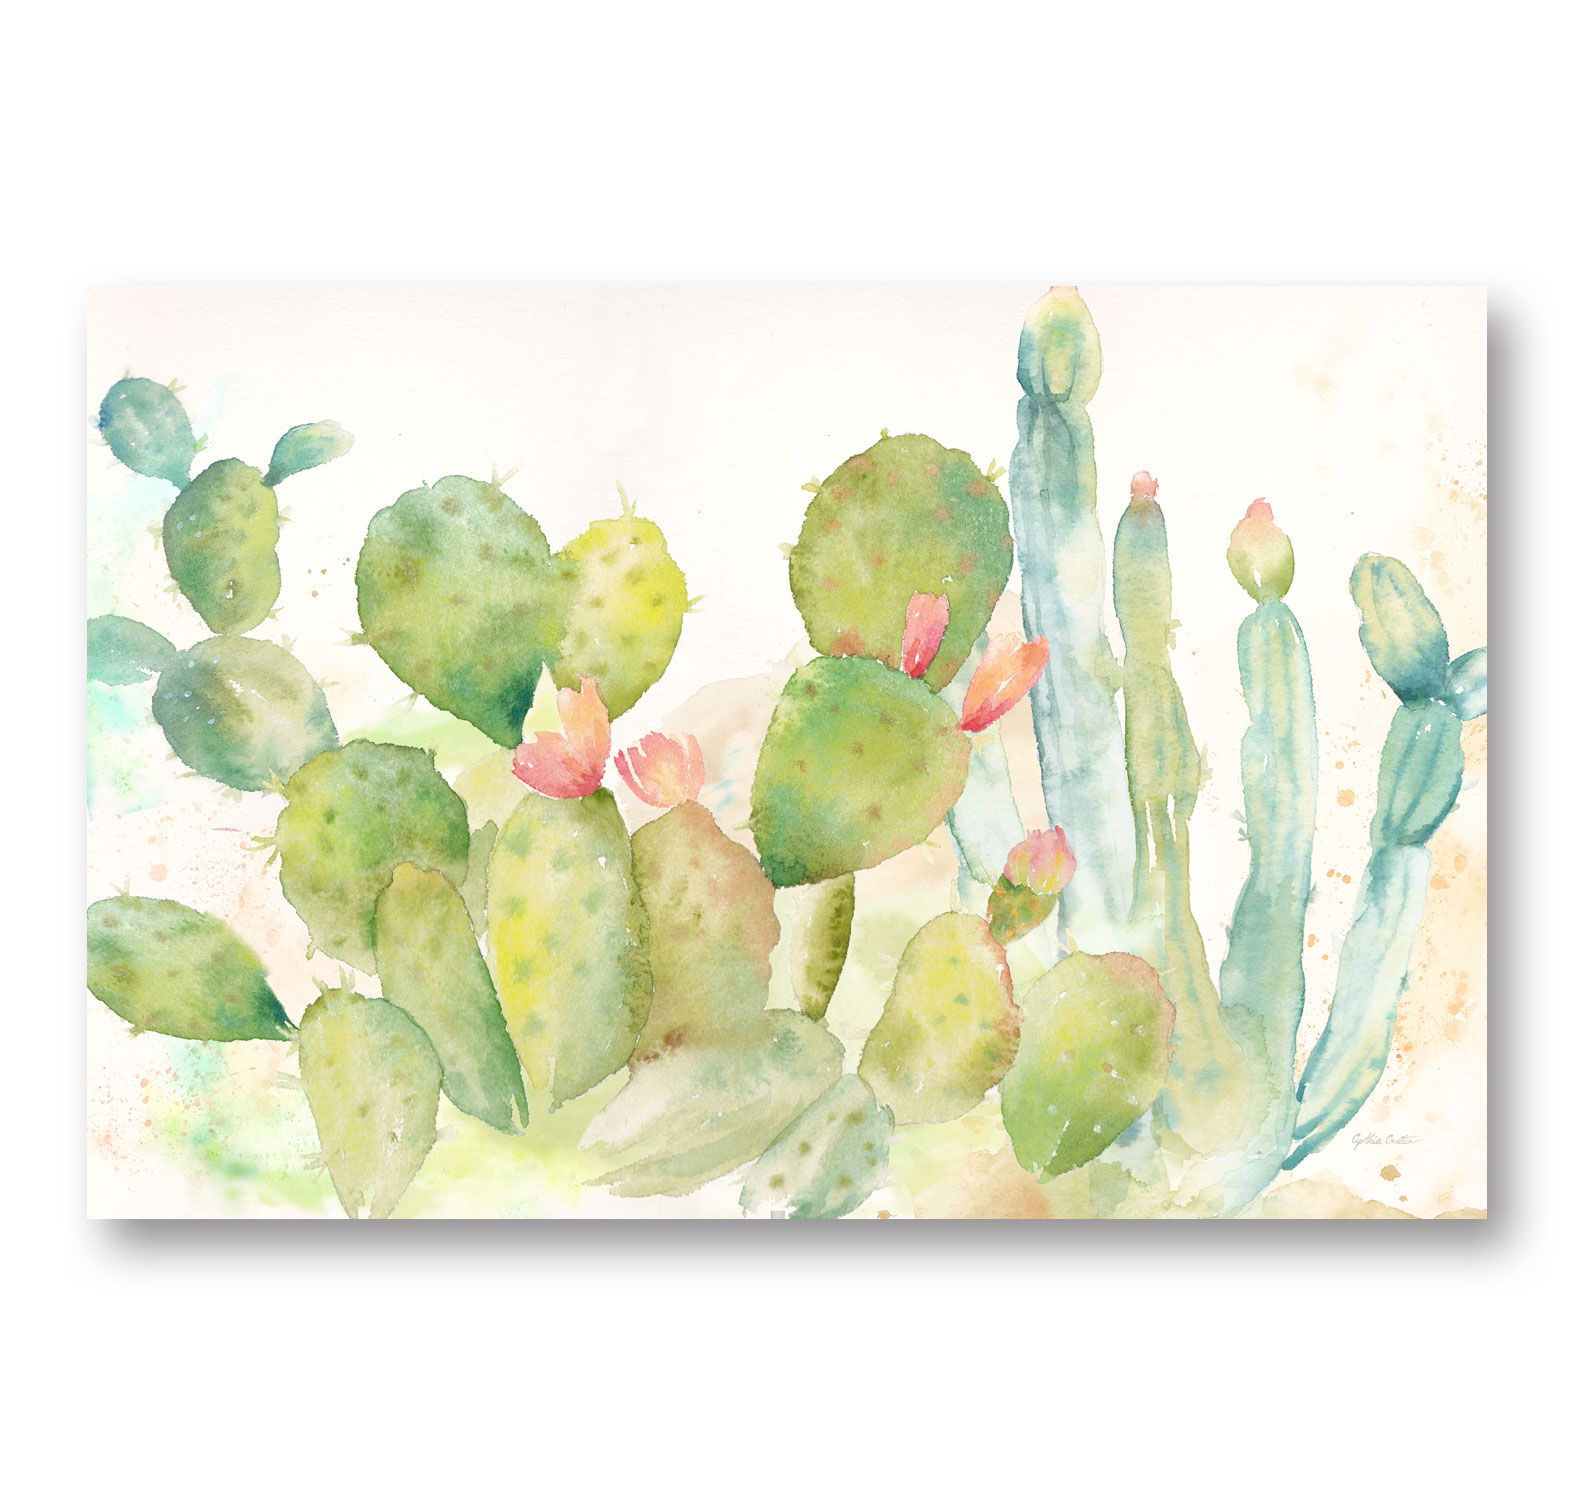 Lovely Watercolor-Style Desert Cactus Print by Cynthia Coulter; One 18x12in Unframed Paper Poster